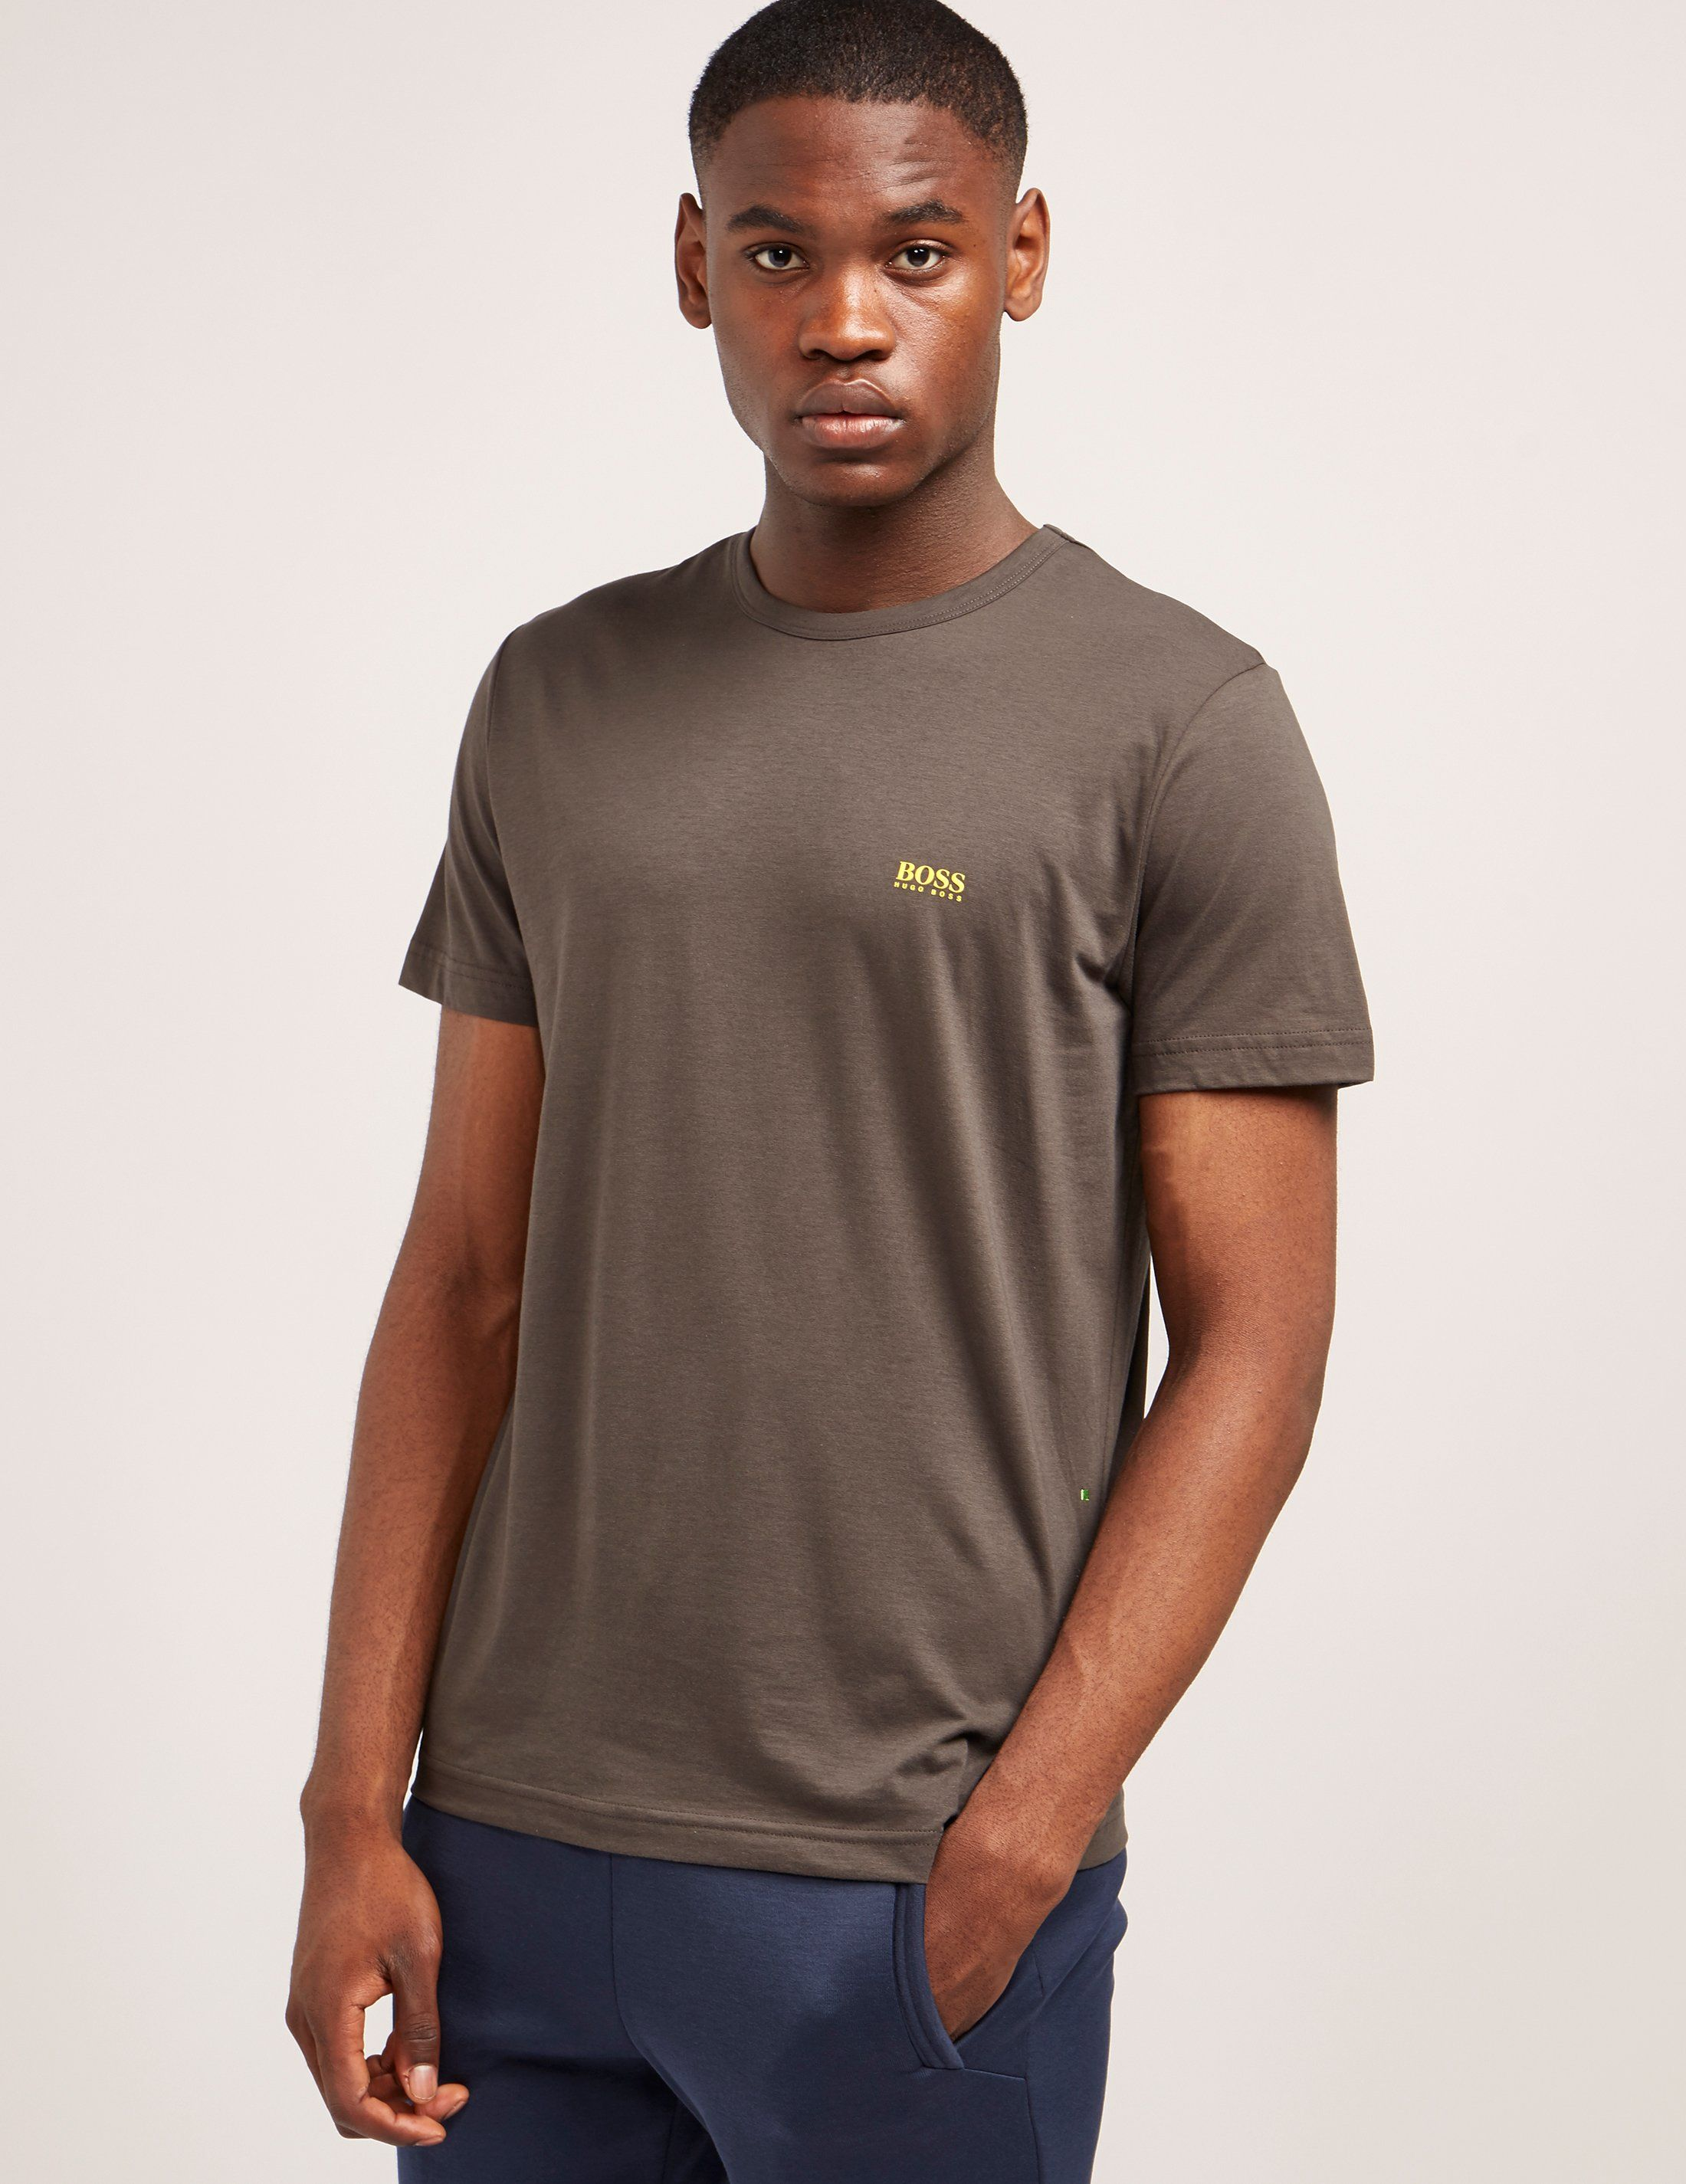 BOSS Green Logo Short Sleeve T-Shirt